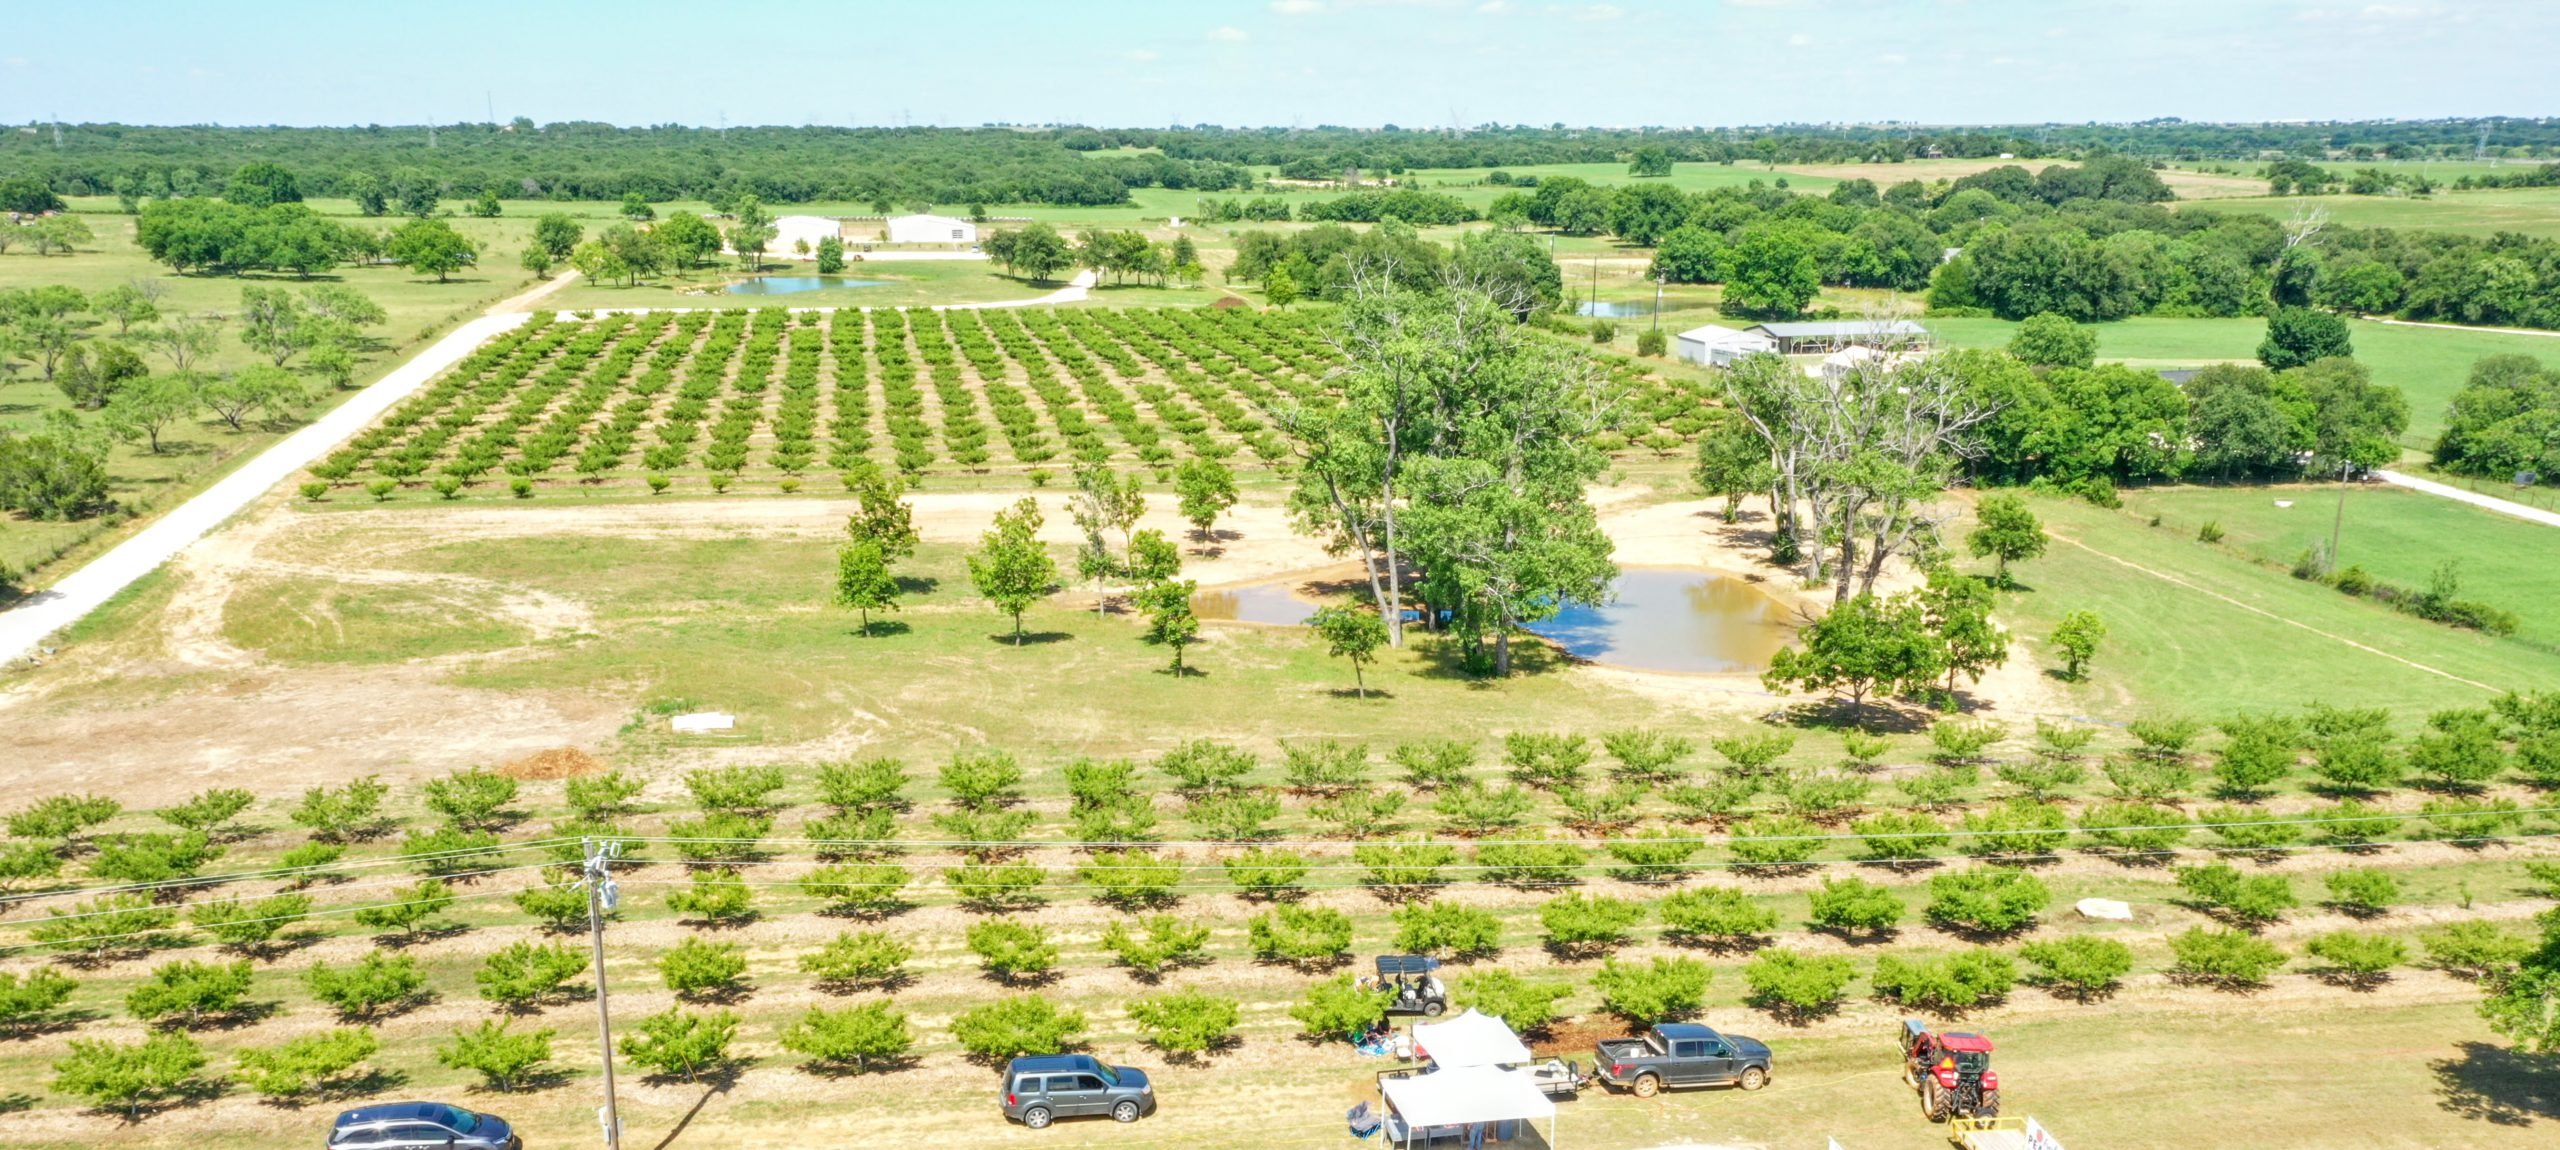 So you want to start a peach orchard?